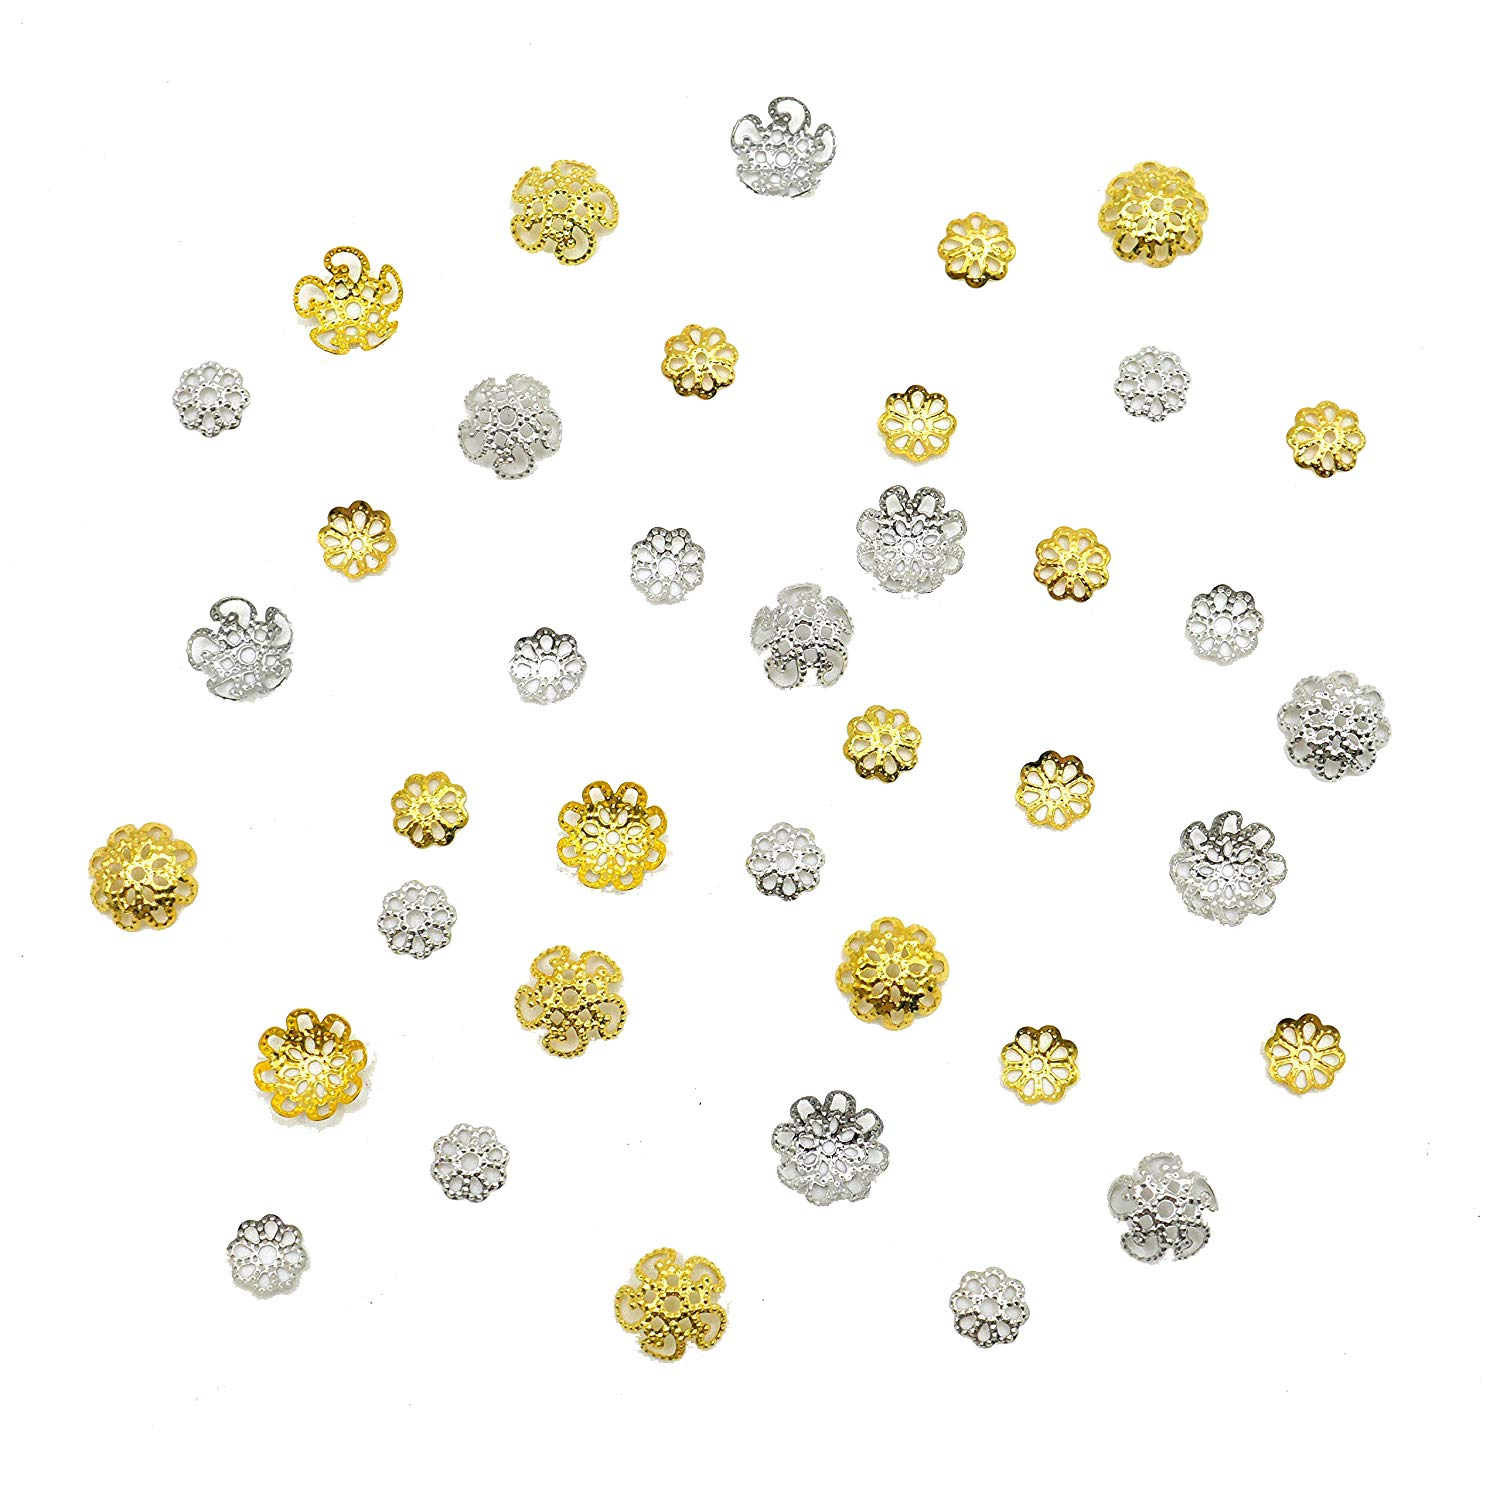 MosBug 600PCS Gold Silver Iron Filigree Flower 7mm 9mm 10mm Bead Caps for Jewelry Making End Caps